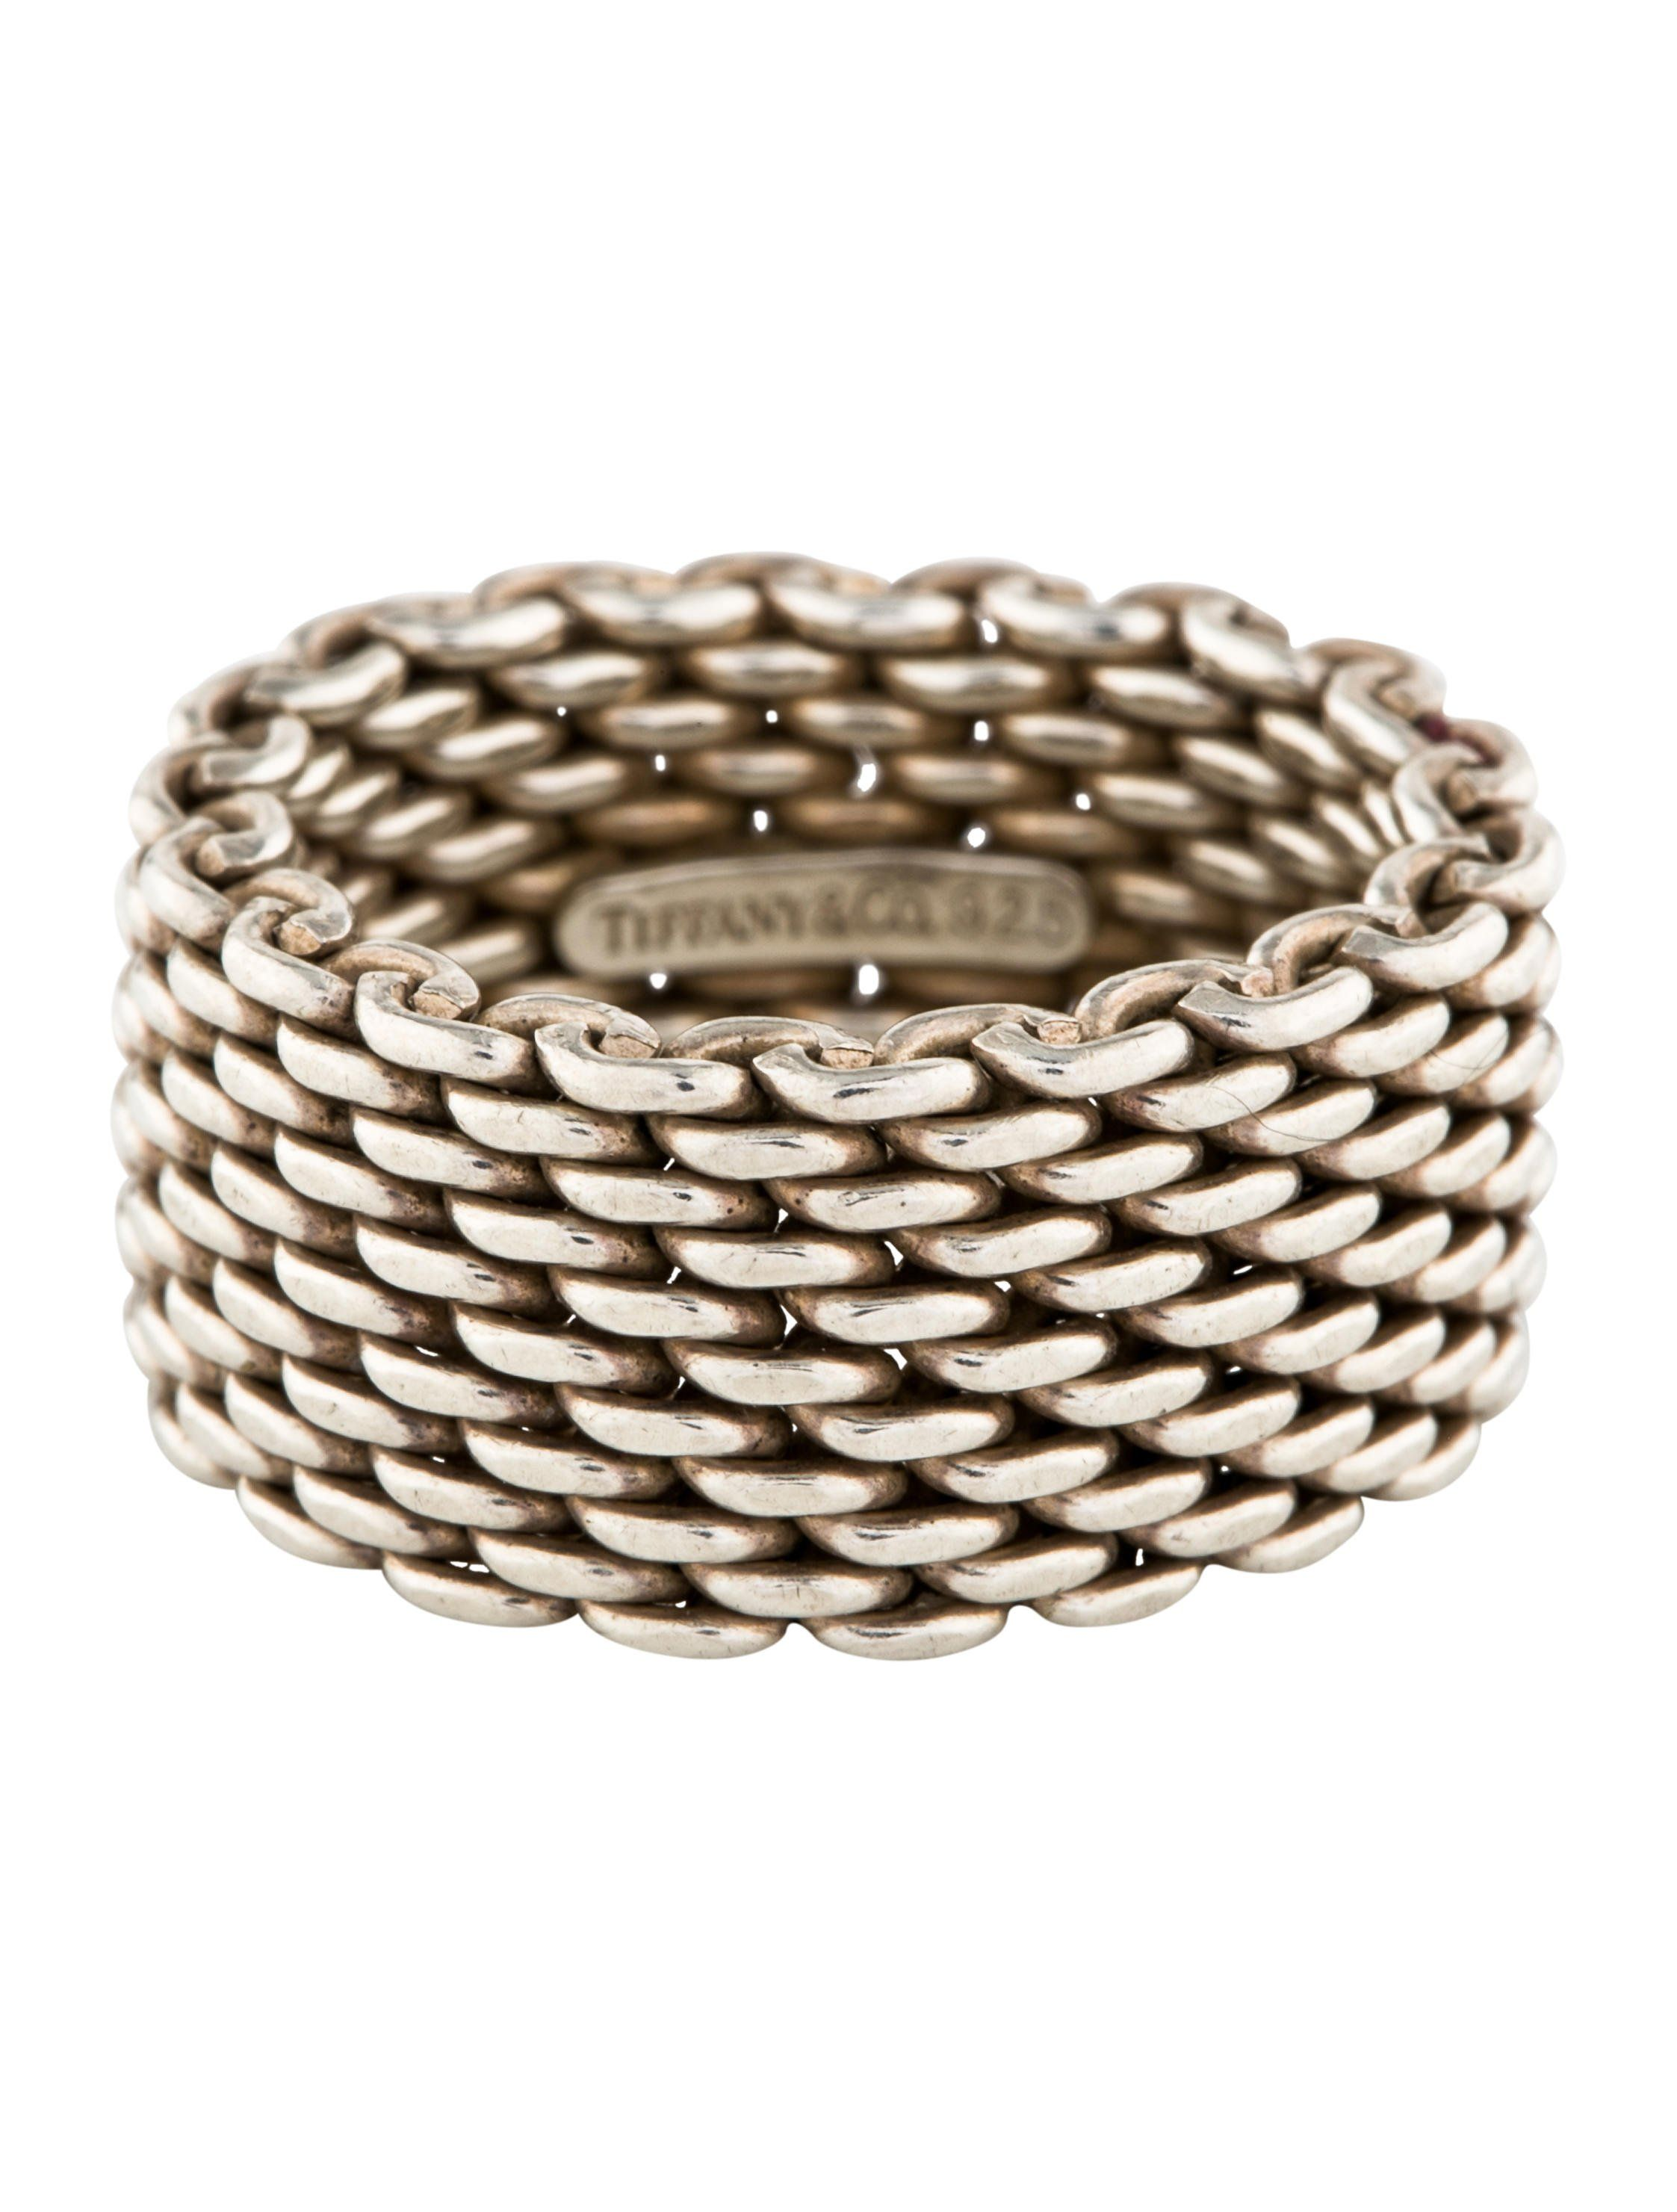 f58df56df50c4 Sterling silver Tiffany   Co. Somerset ring featuring woven mesh links  throughout.